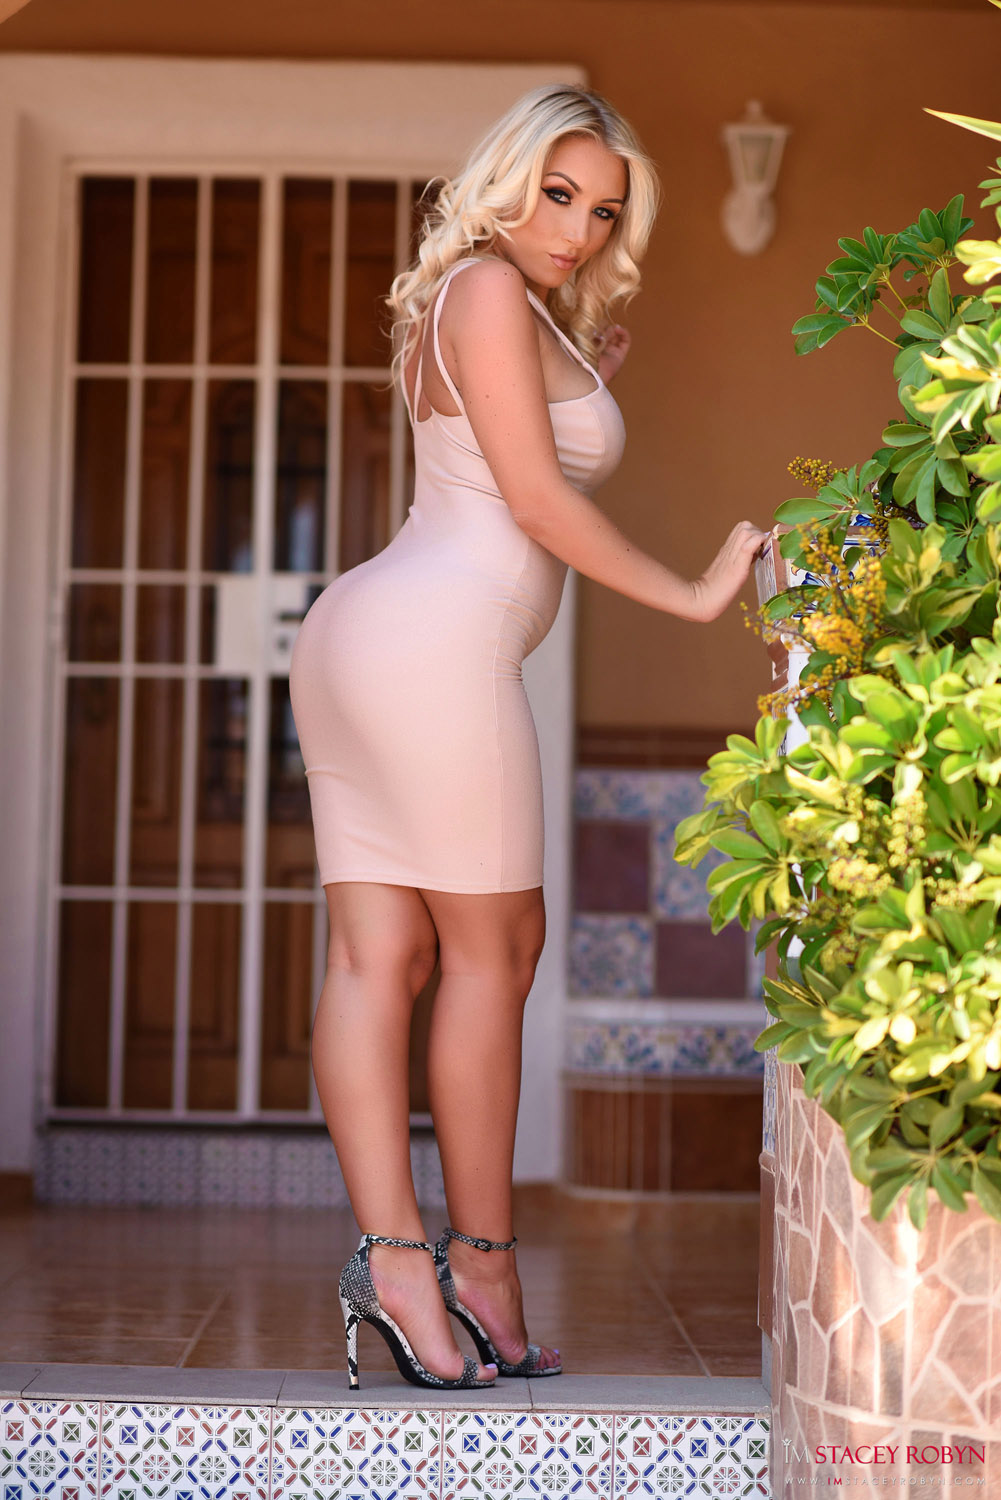 Was Thick girls tight skirt ass naked